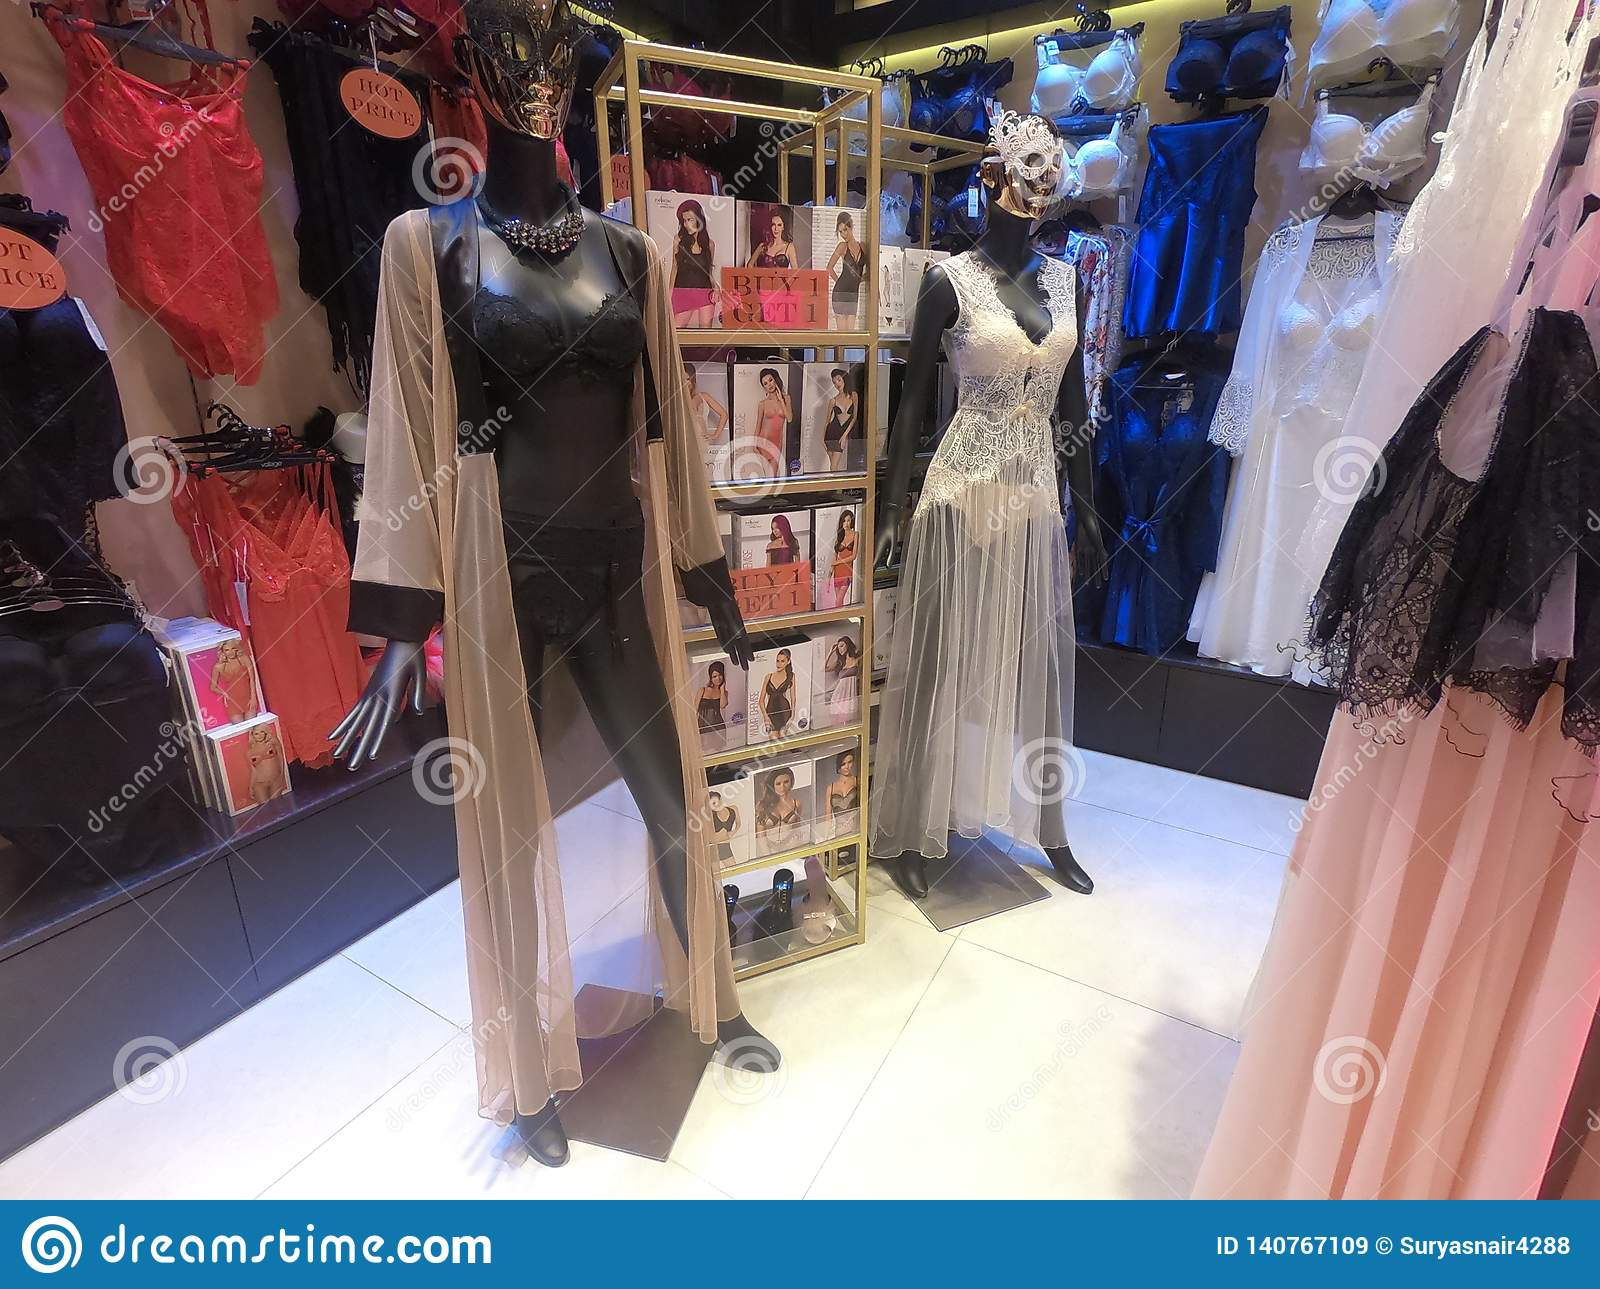 Women Lingerie Displayed on a mannequin for Sale in a Boutique Store